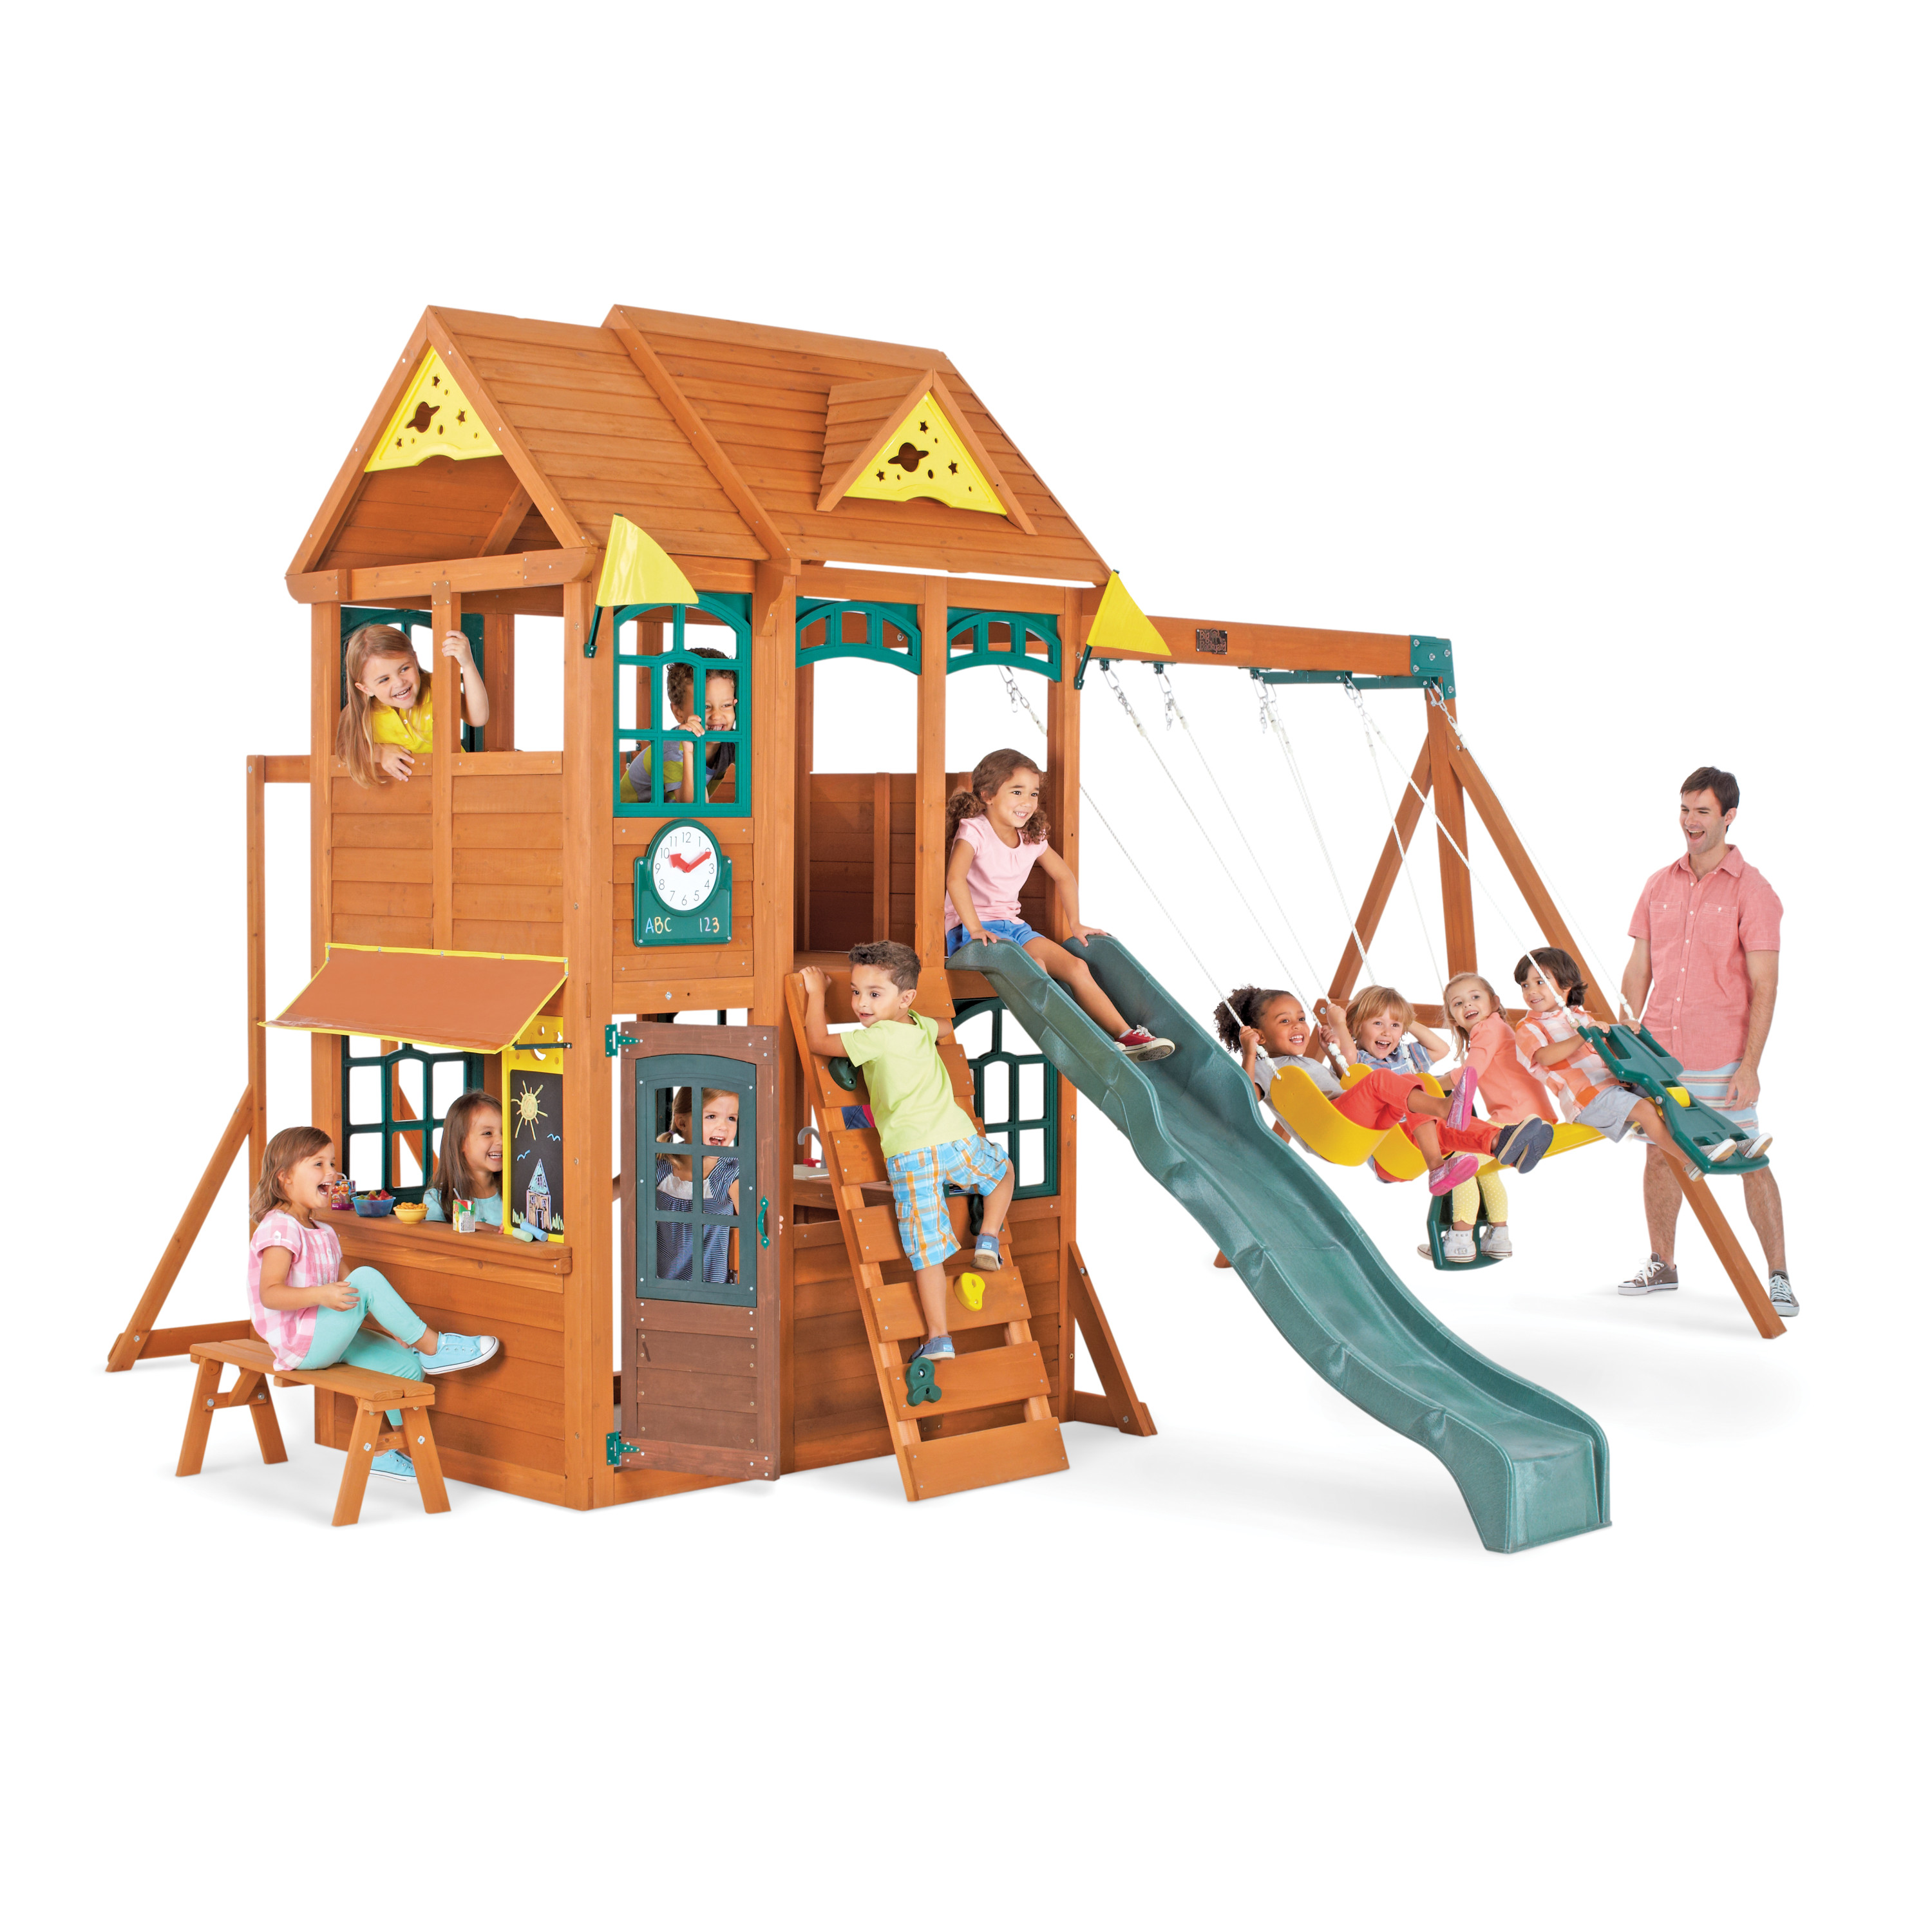 Big Backyard Meadowbrook Outdoor Wooden Playset by KidKraft - Walmart.com